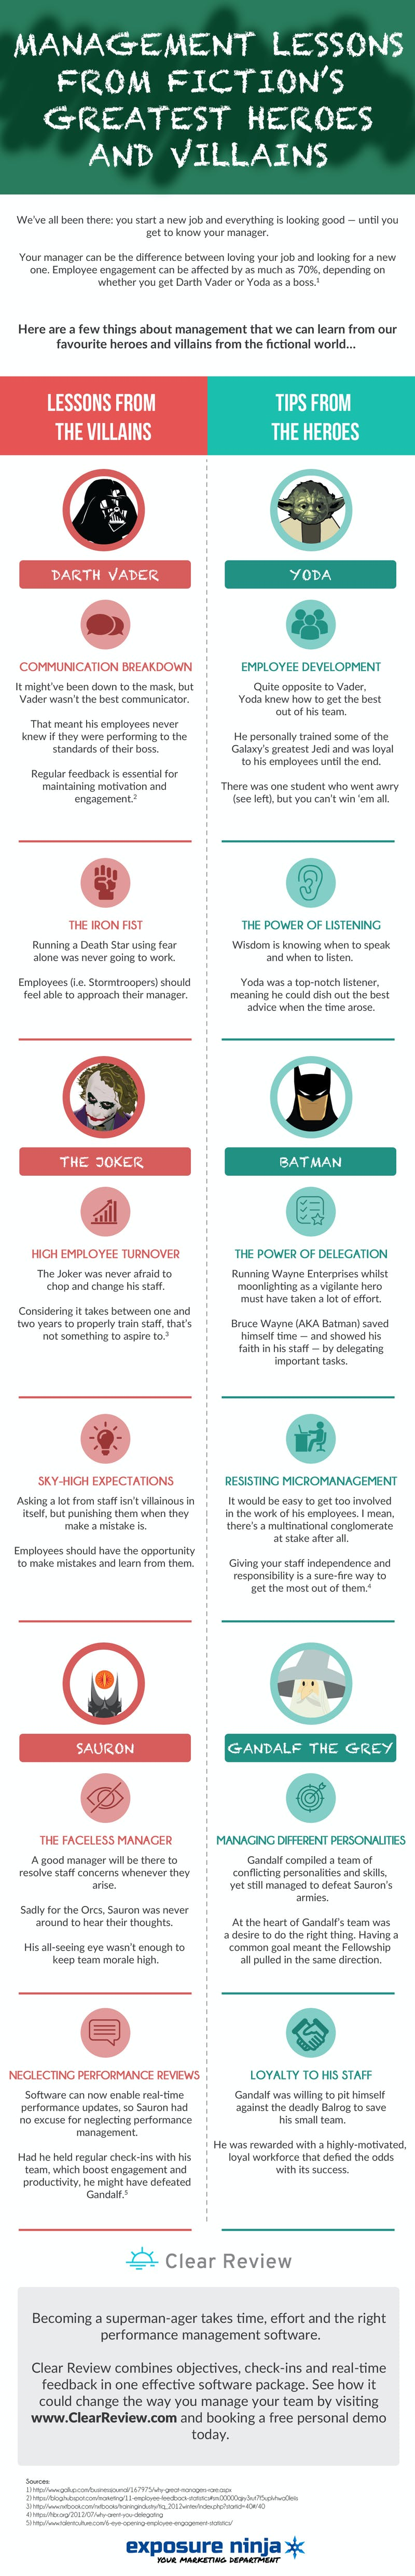 Performance Management Lessons from Epic Heroes and Infamous Villains.